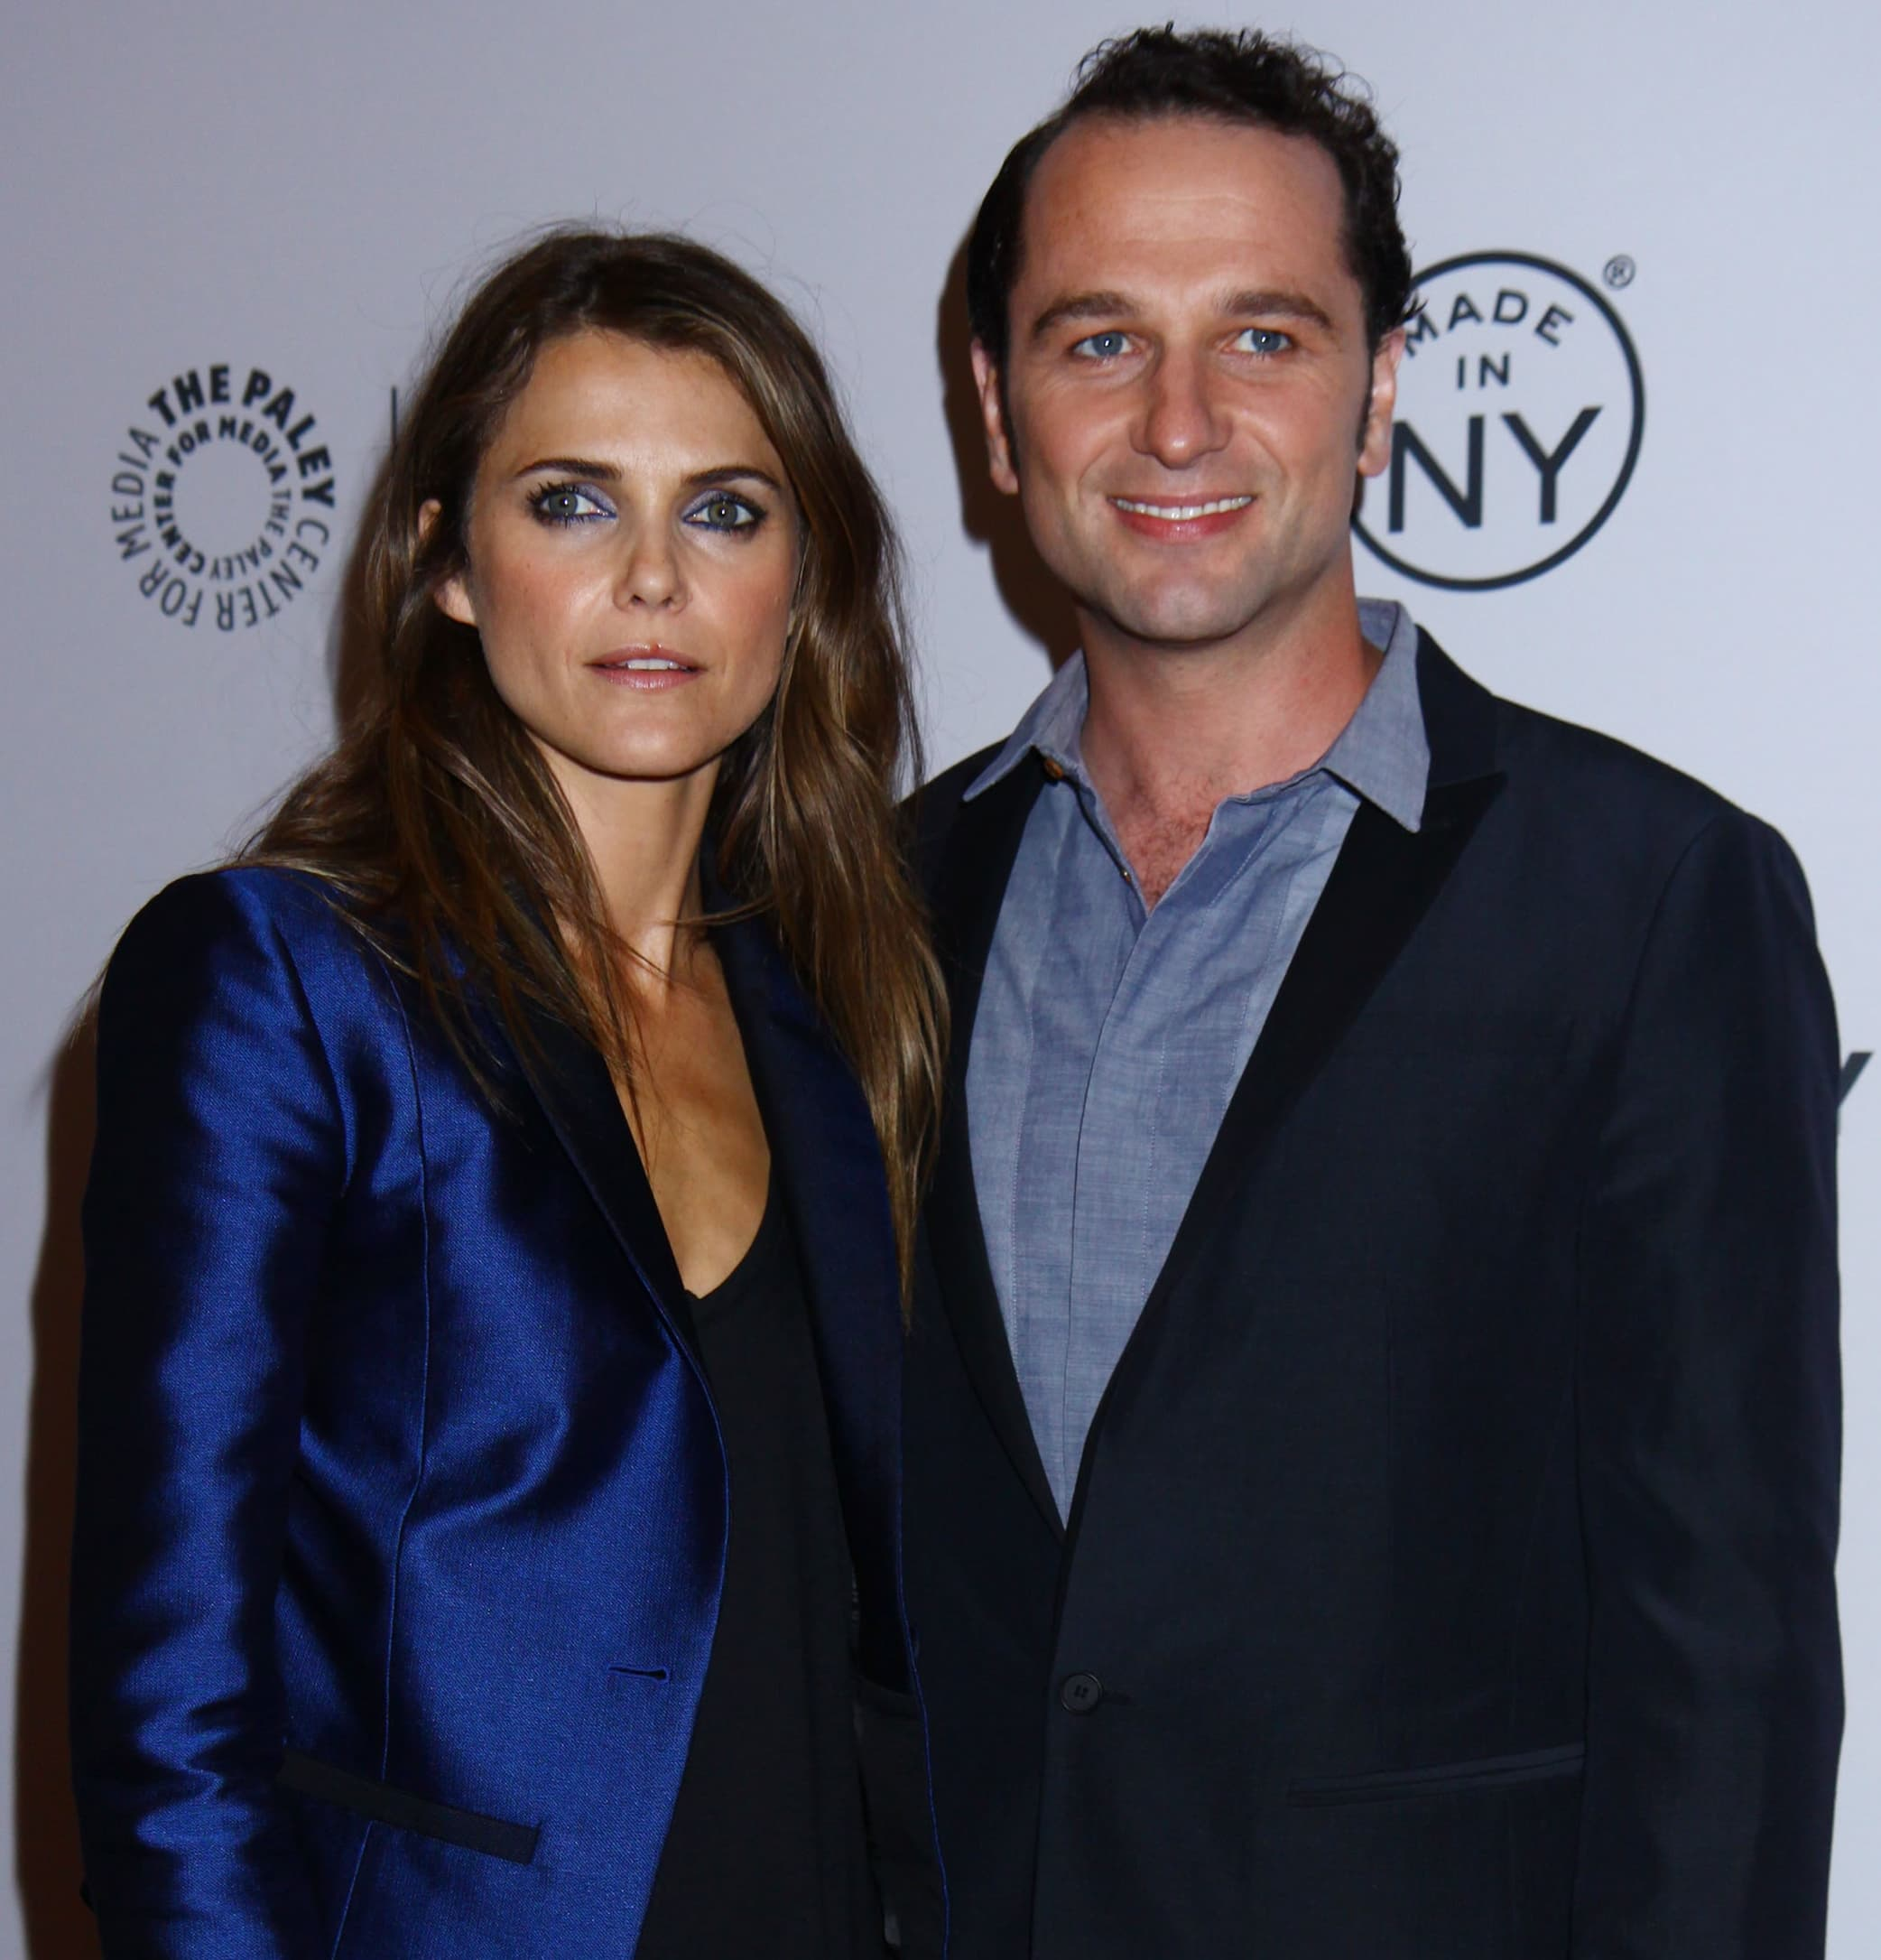 Keri Russell and Matthew Rhys started dating after meeting on the set of The Americans